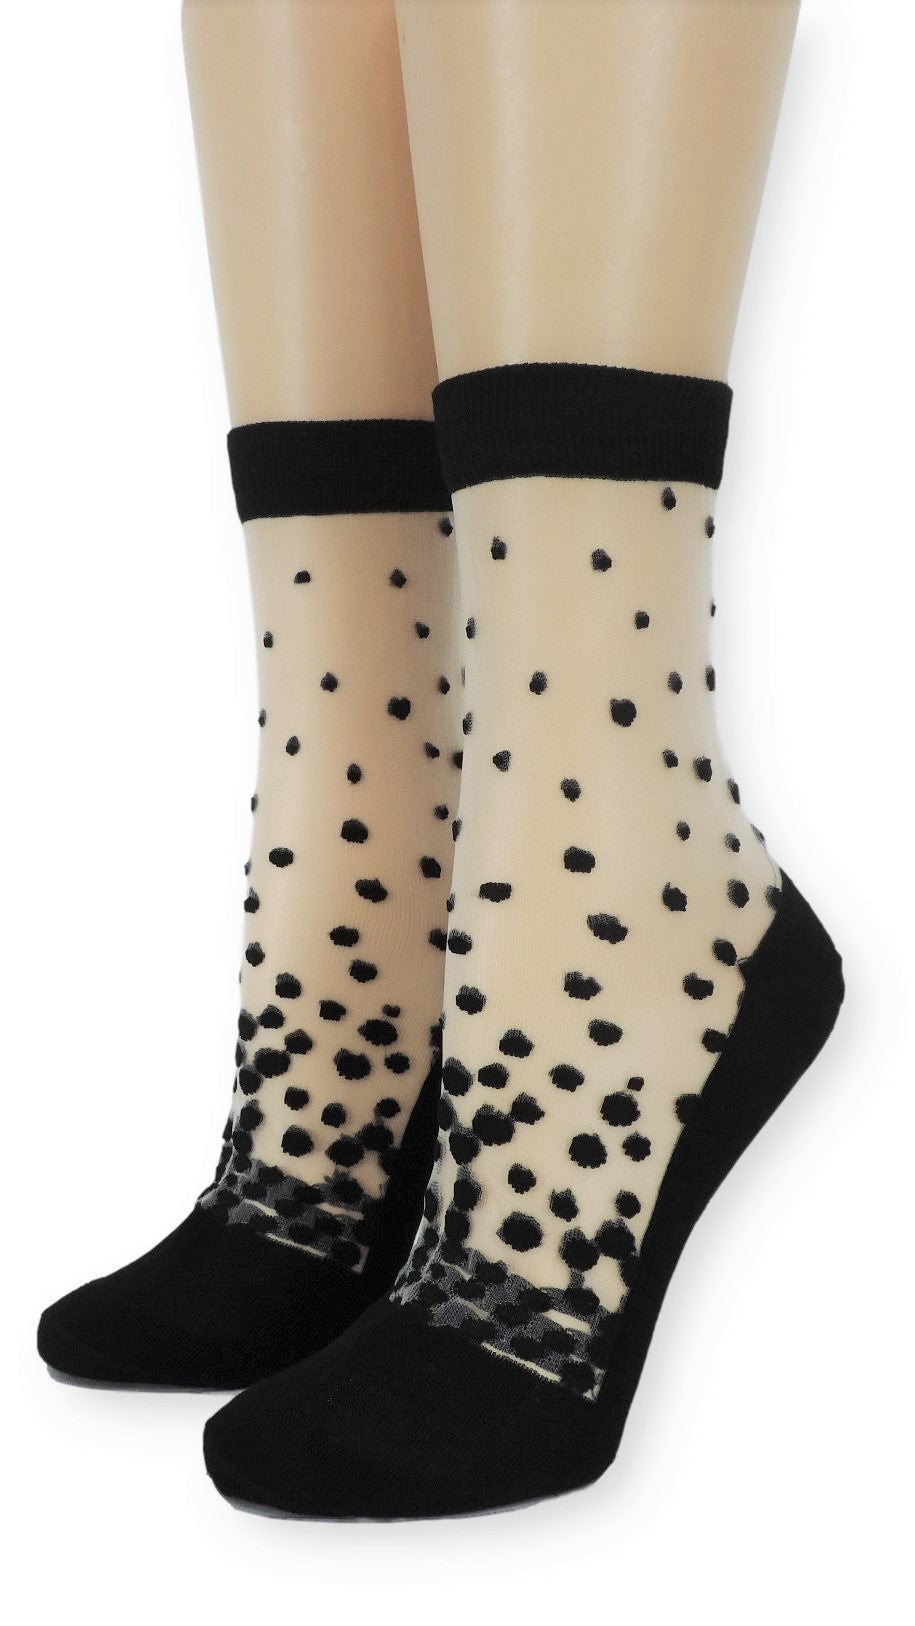 Black Stippled Sheer Socks - Global Trendz Fashion®